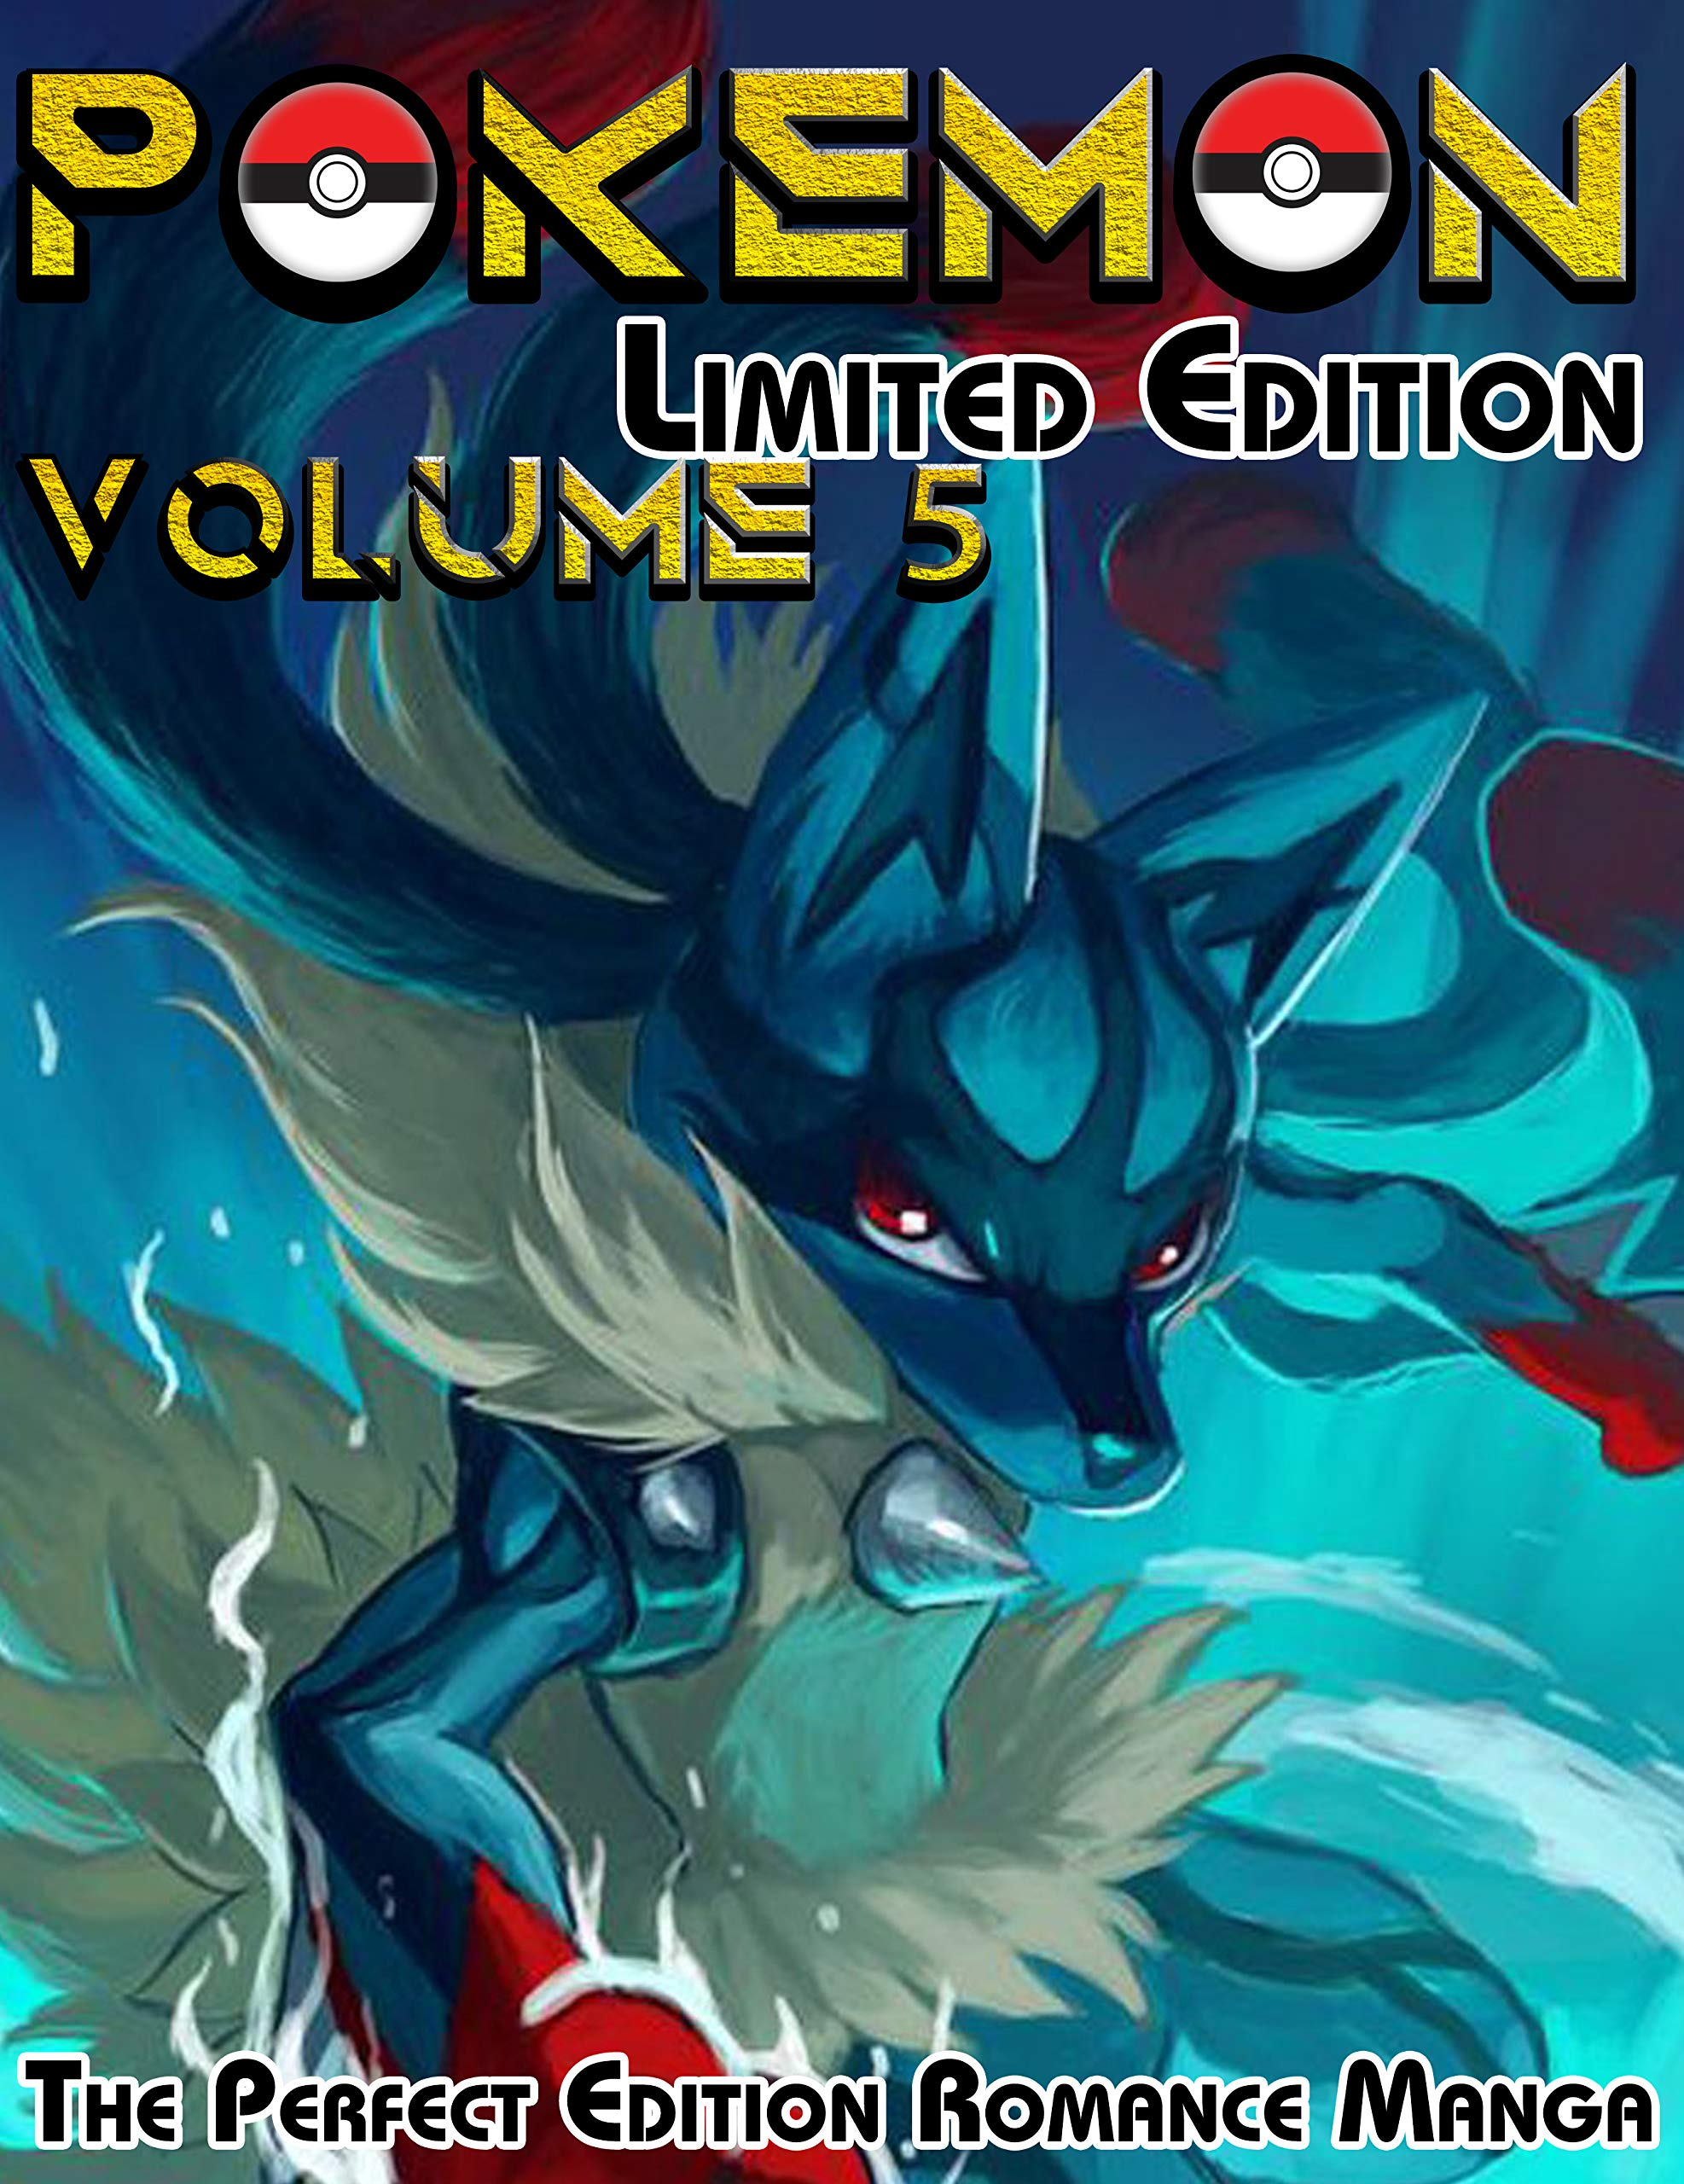 The Perfect Edition Romance Manga Pokemon Limited Edition: Complete Series Pokemon Volume 5